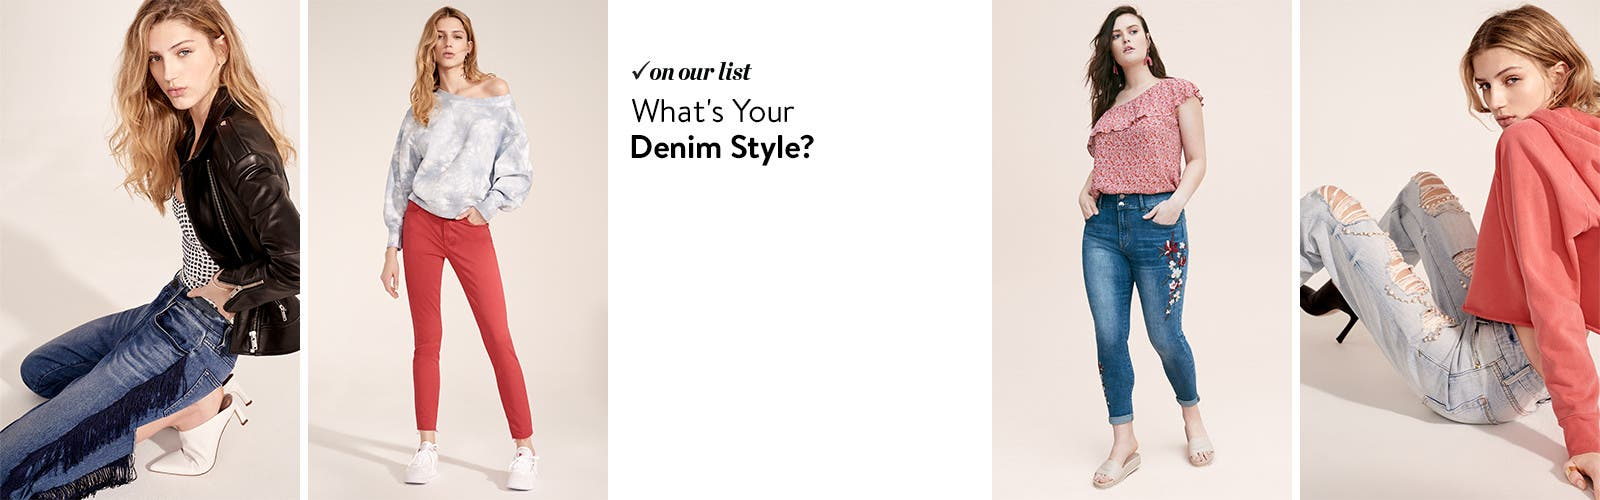 What's your denim style?